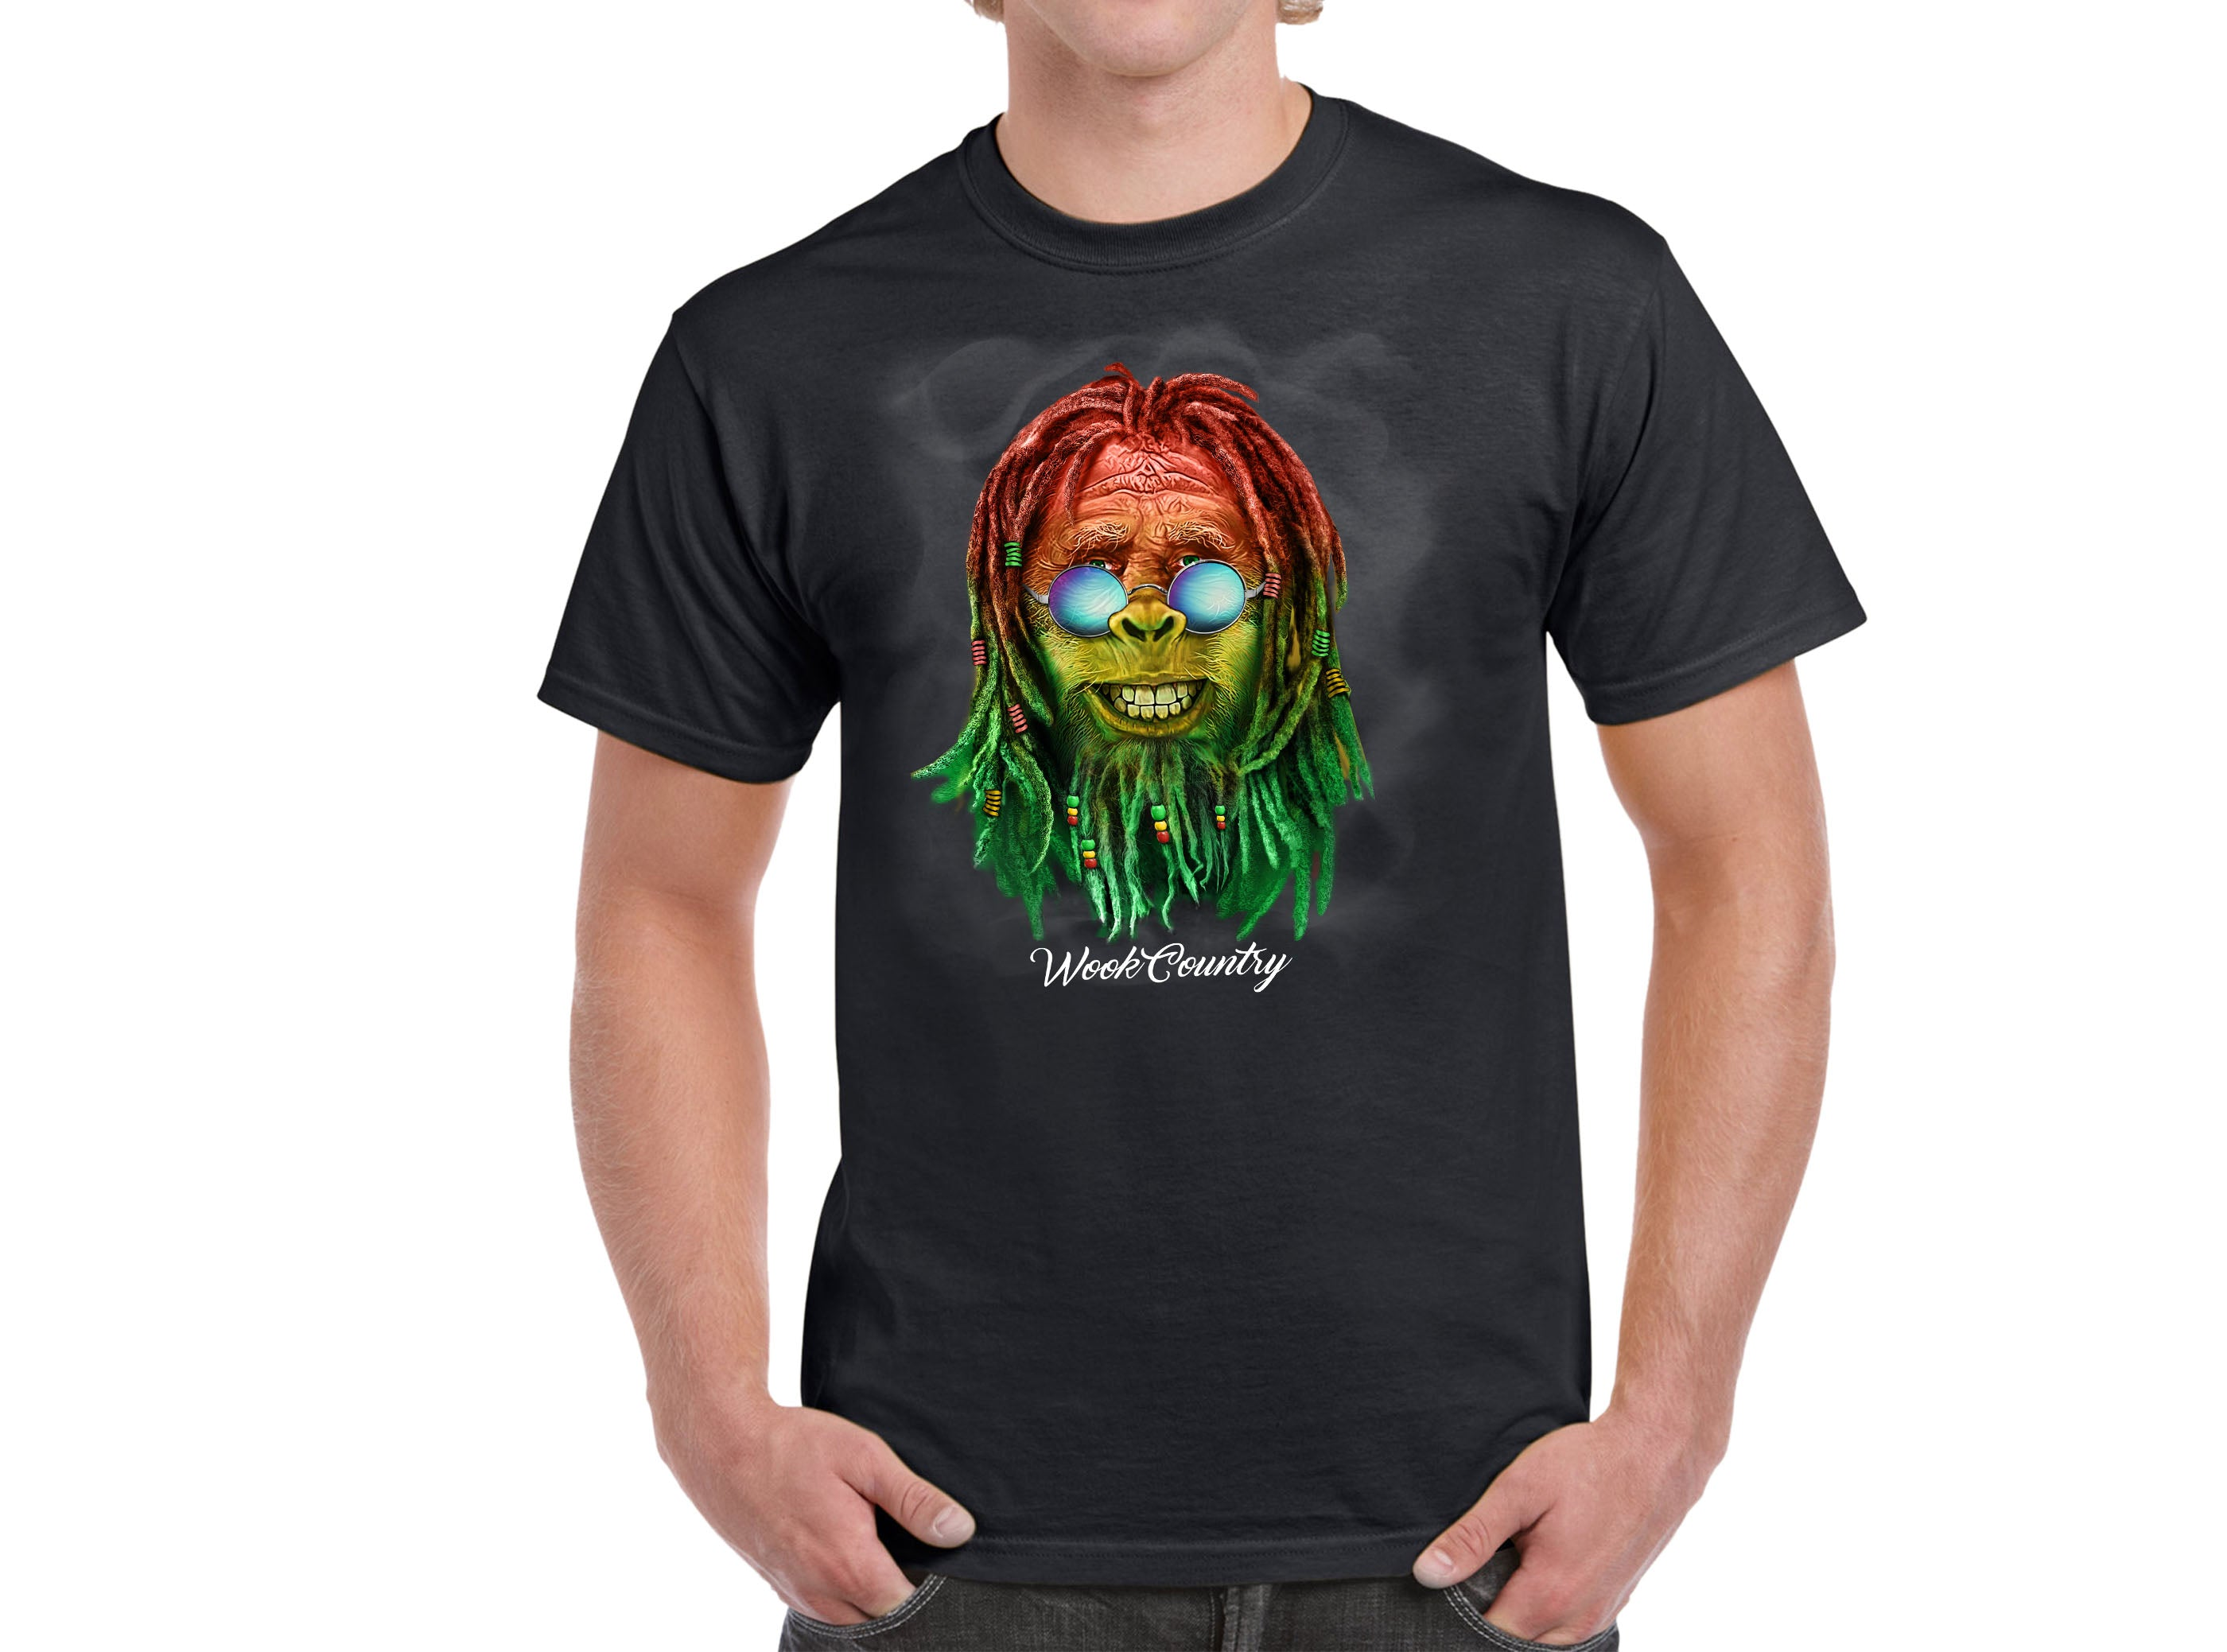 Rasta Wook Country